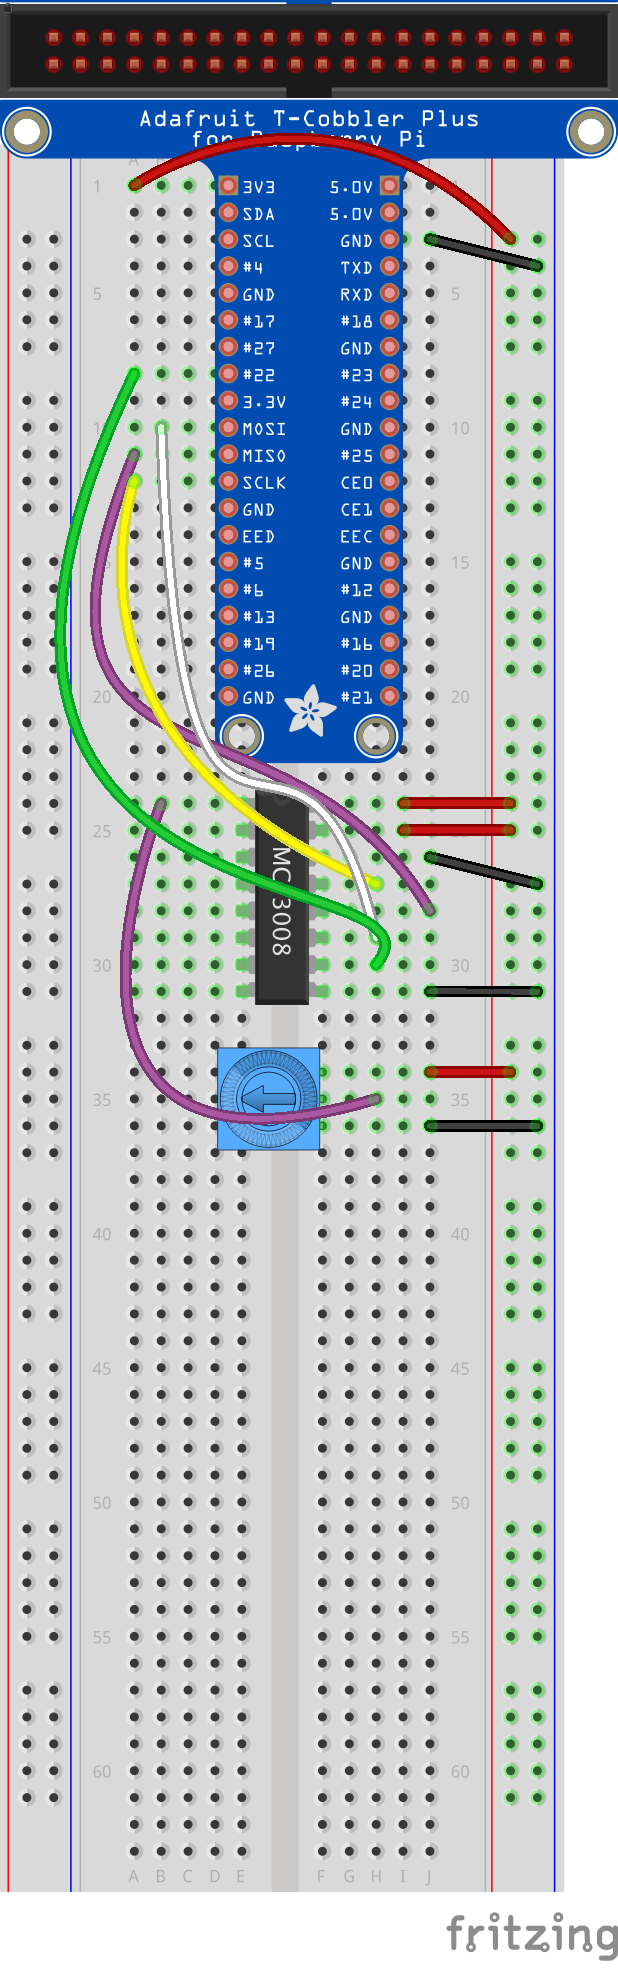 learn_raspberry_pi_Analog_Inputs_for_Raspberry_Pi_Using_the_MCP3008-T-Cobbler-Plus_bb.png